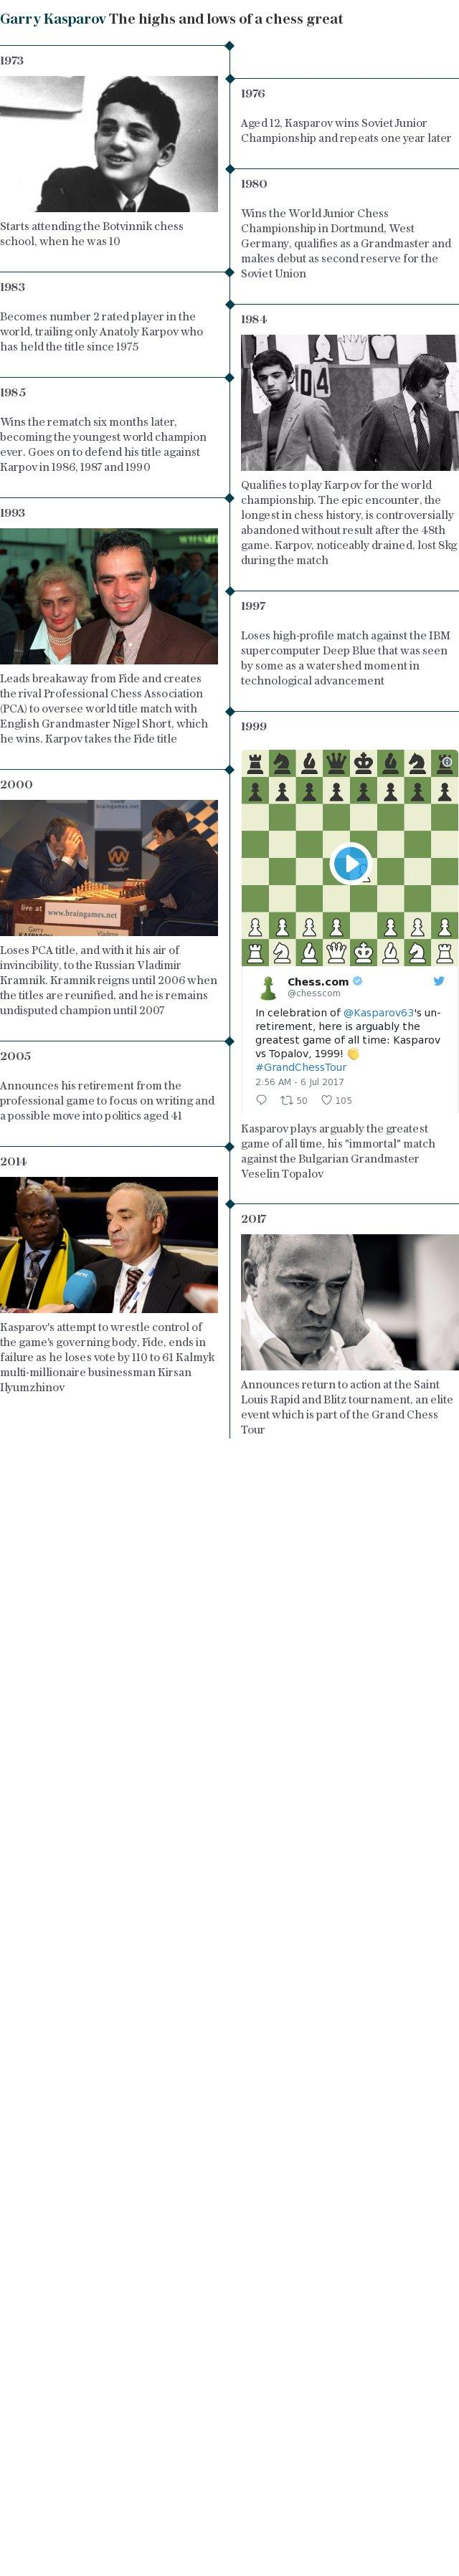 Garry Kasparov The highs and lows of a chess great